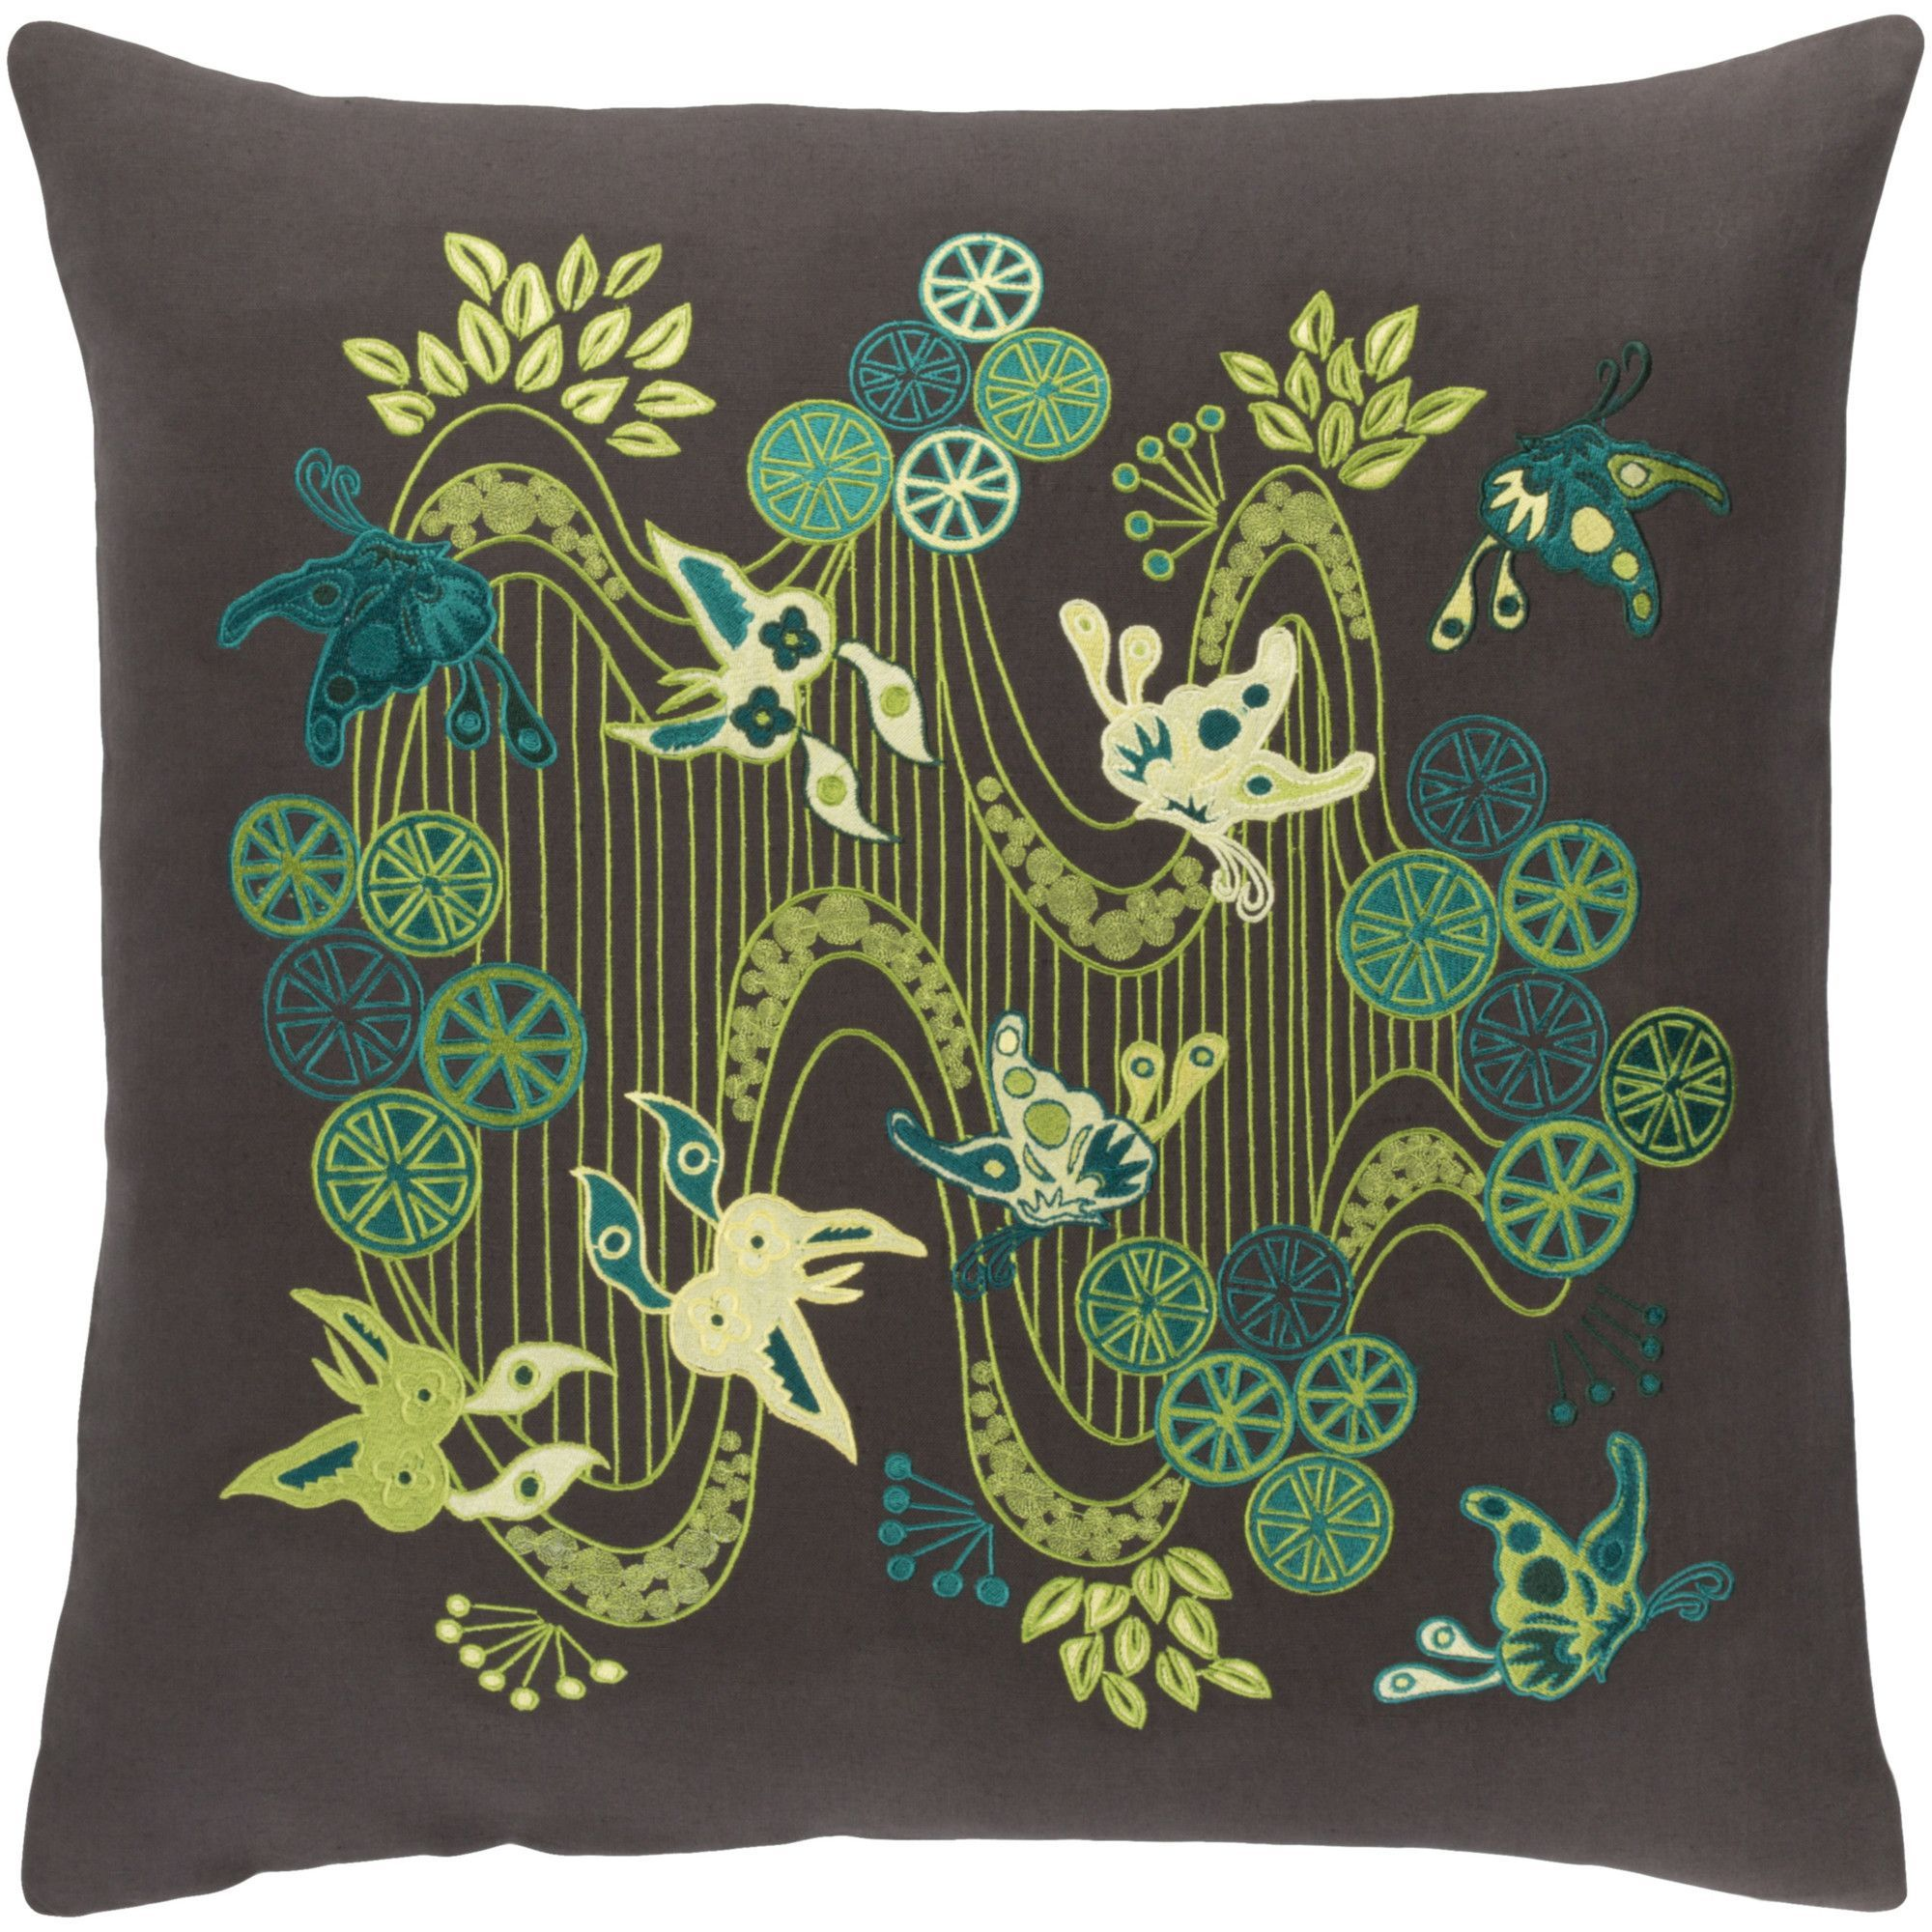 Kismet chinese river throw pillow products pinterest throw